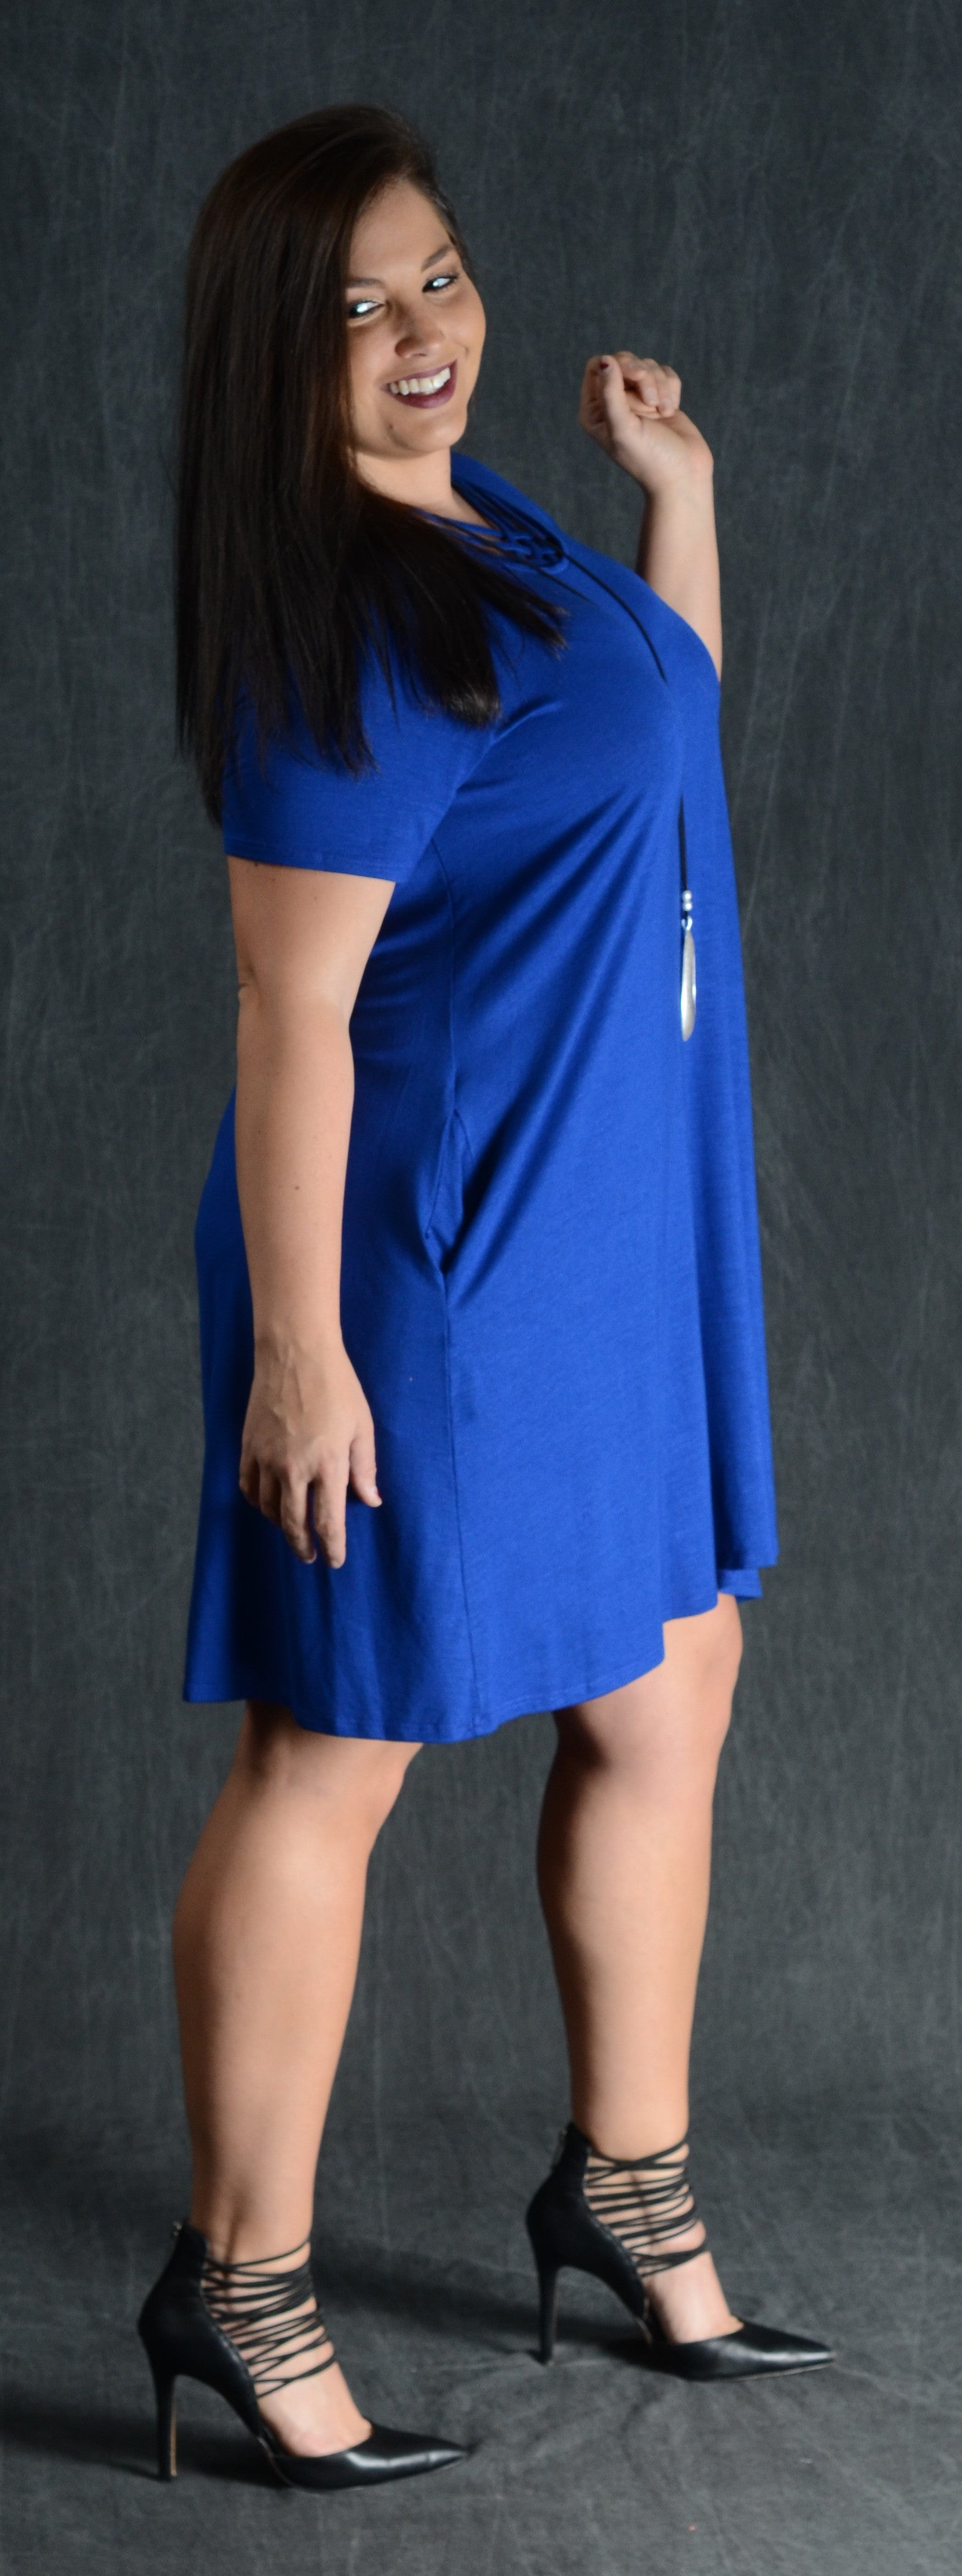 Royal Blue Criss Cross Pocket Dress - www.mycurvystore.com - Curvy Boutique - Plus Size